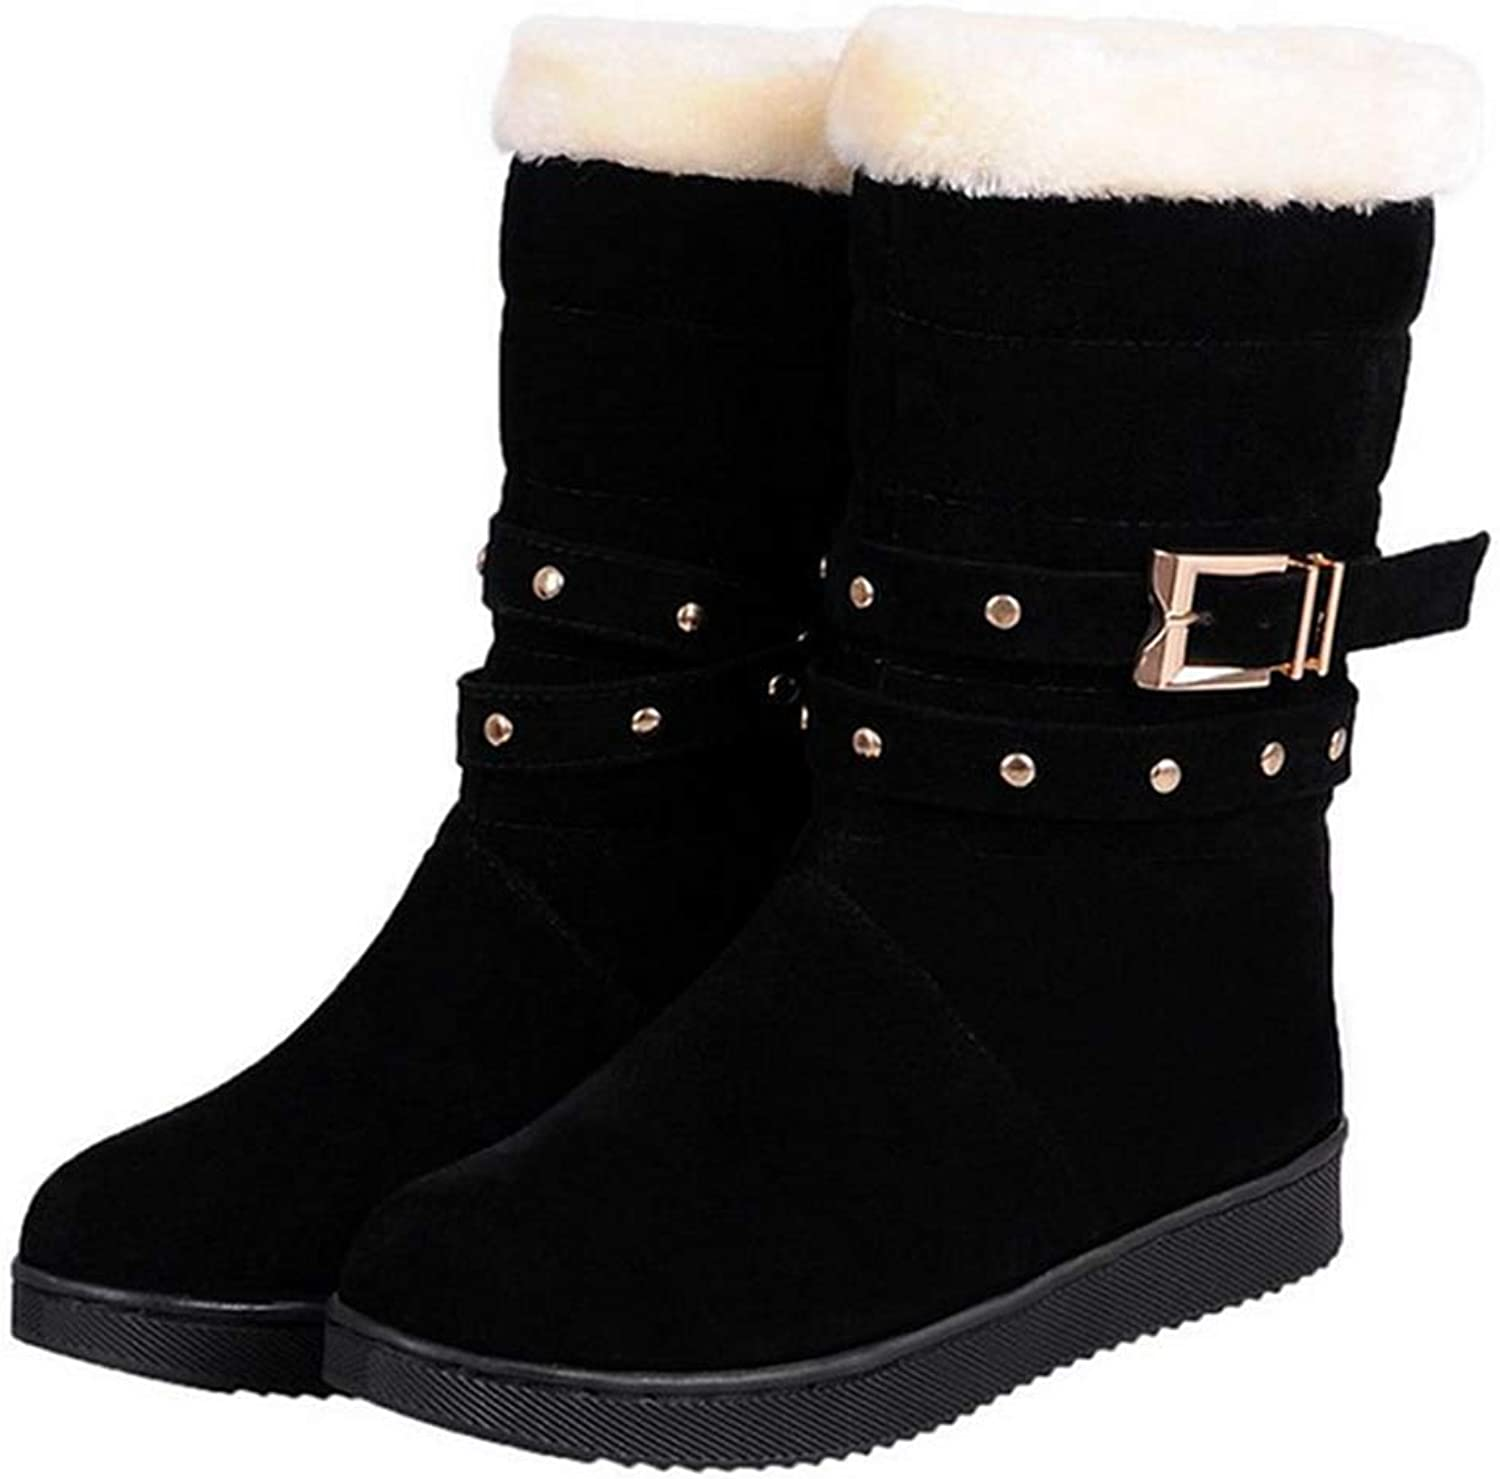 Fay Waters Womens Warm Flats Half Short Boots Plush Chunky Mid Calf Round Toe Winter Snow Booties